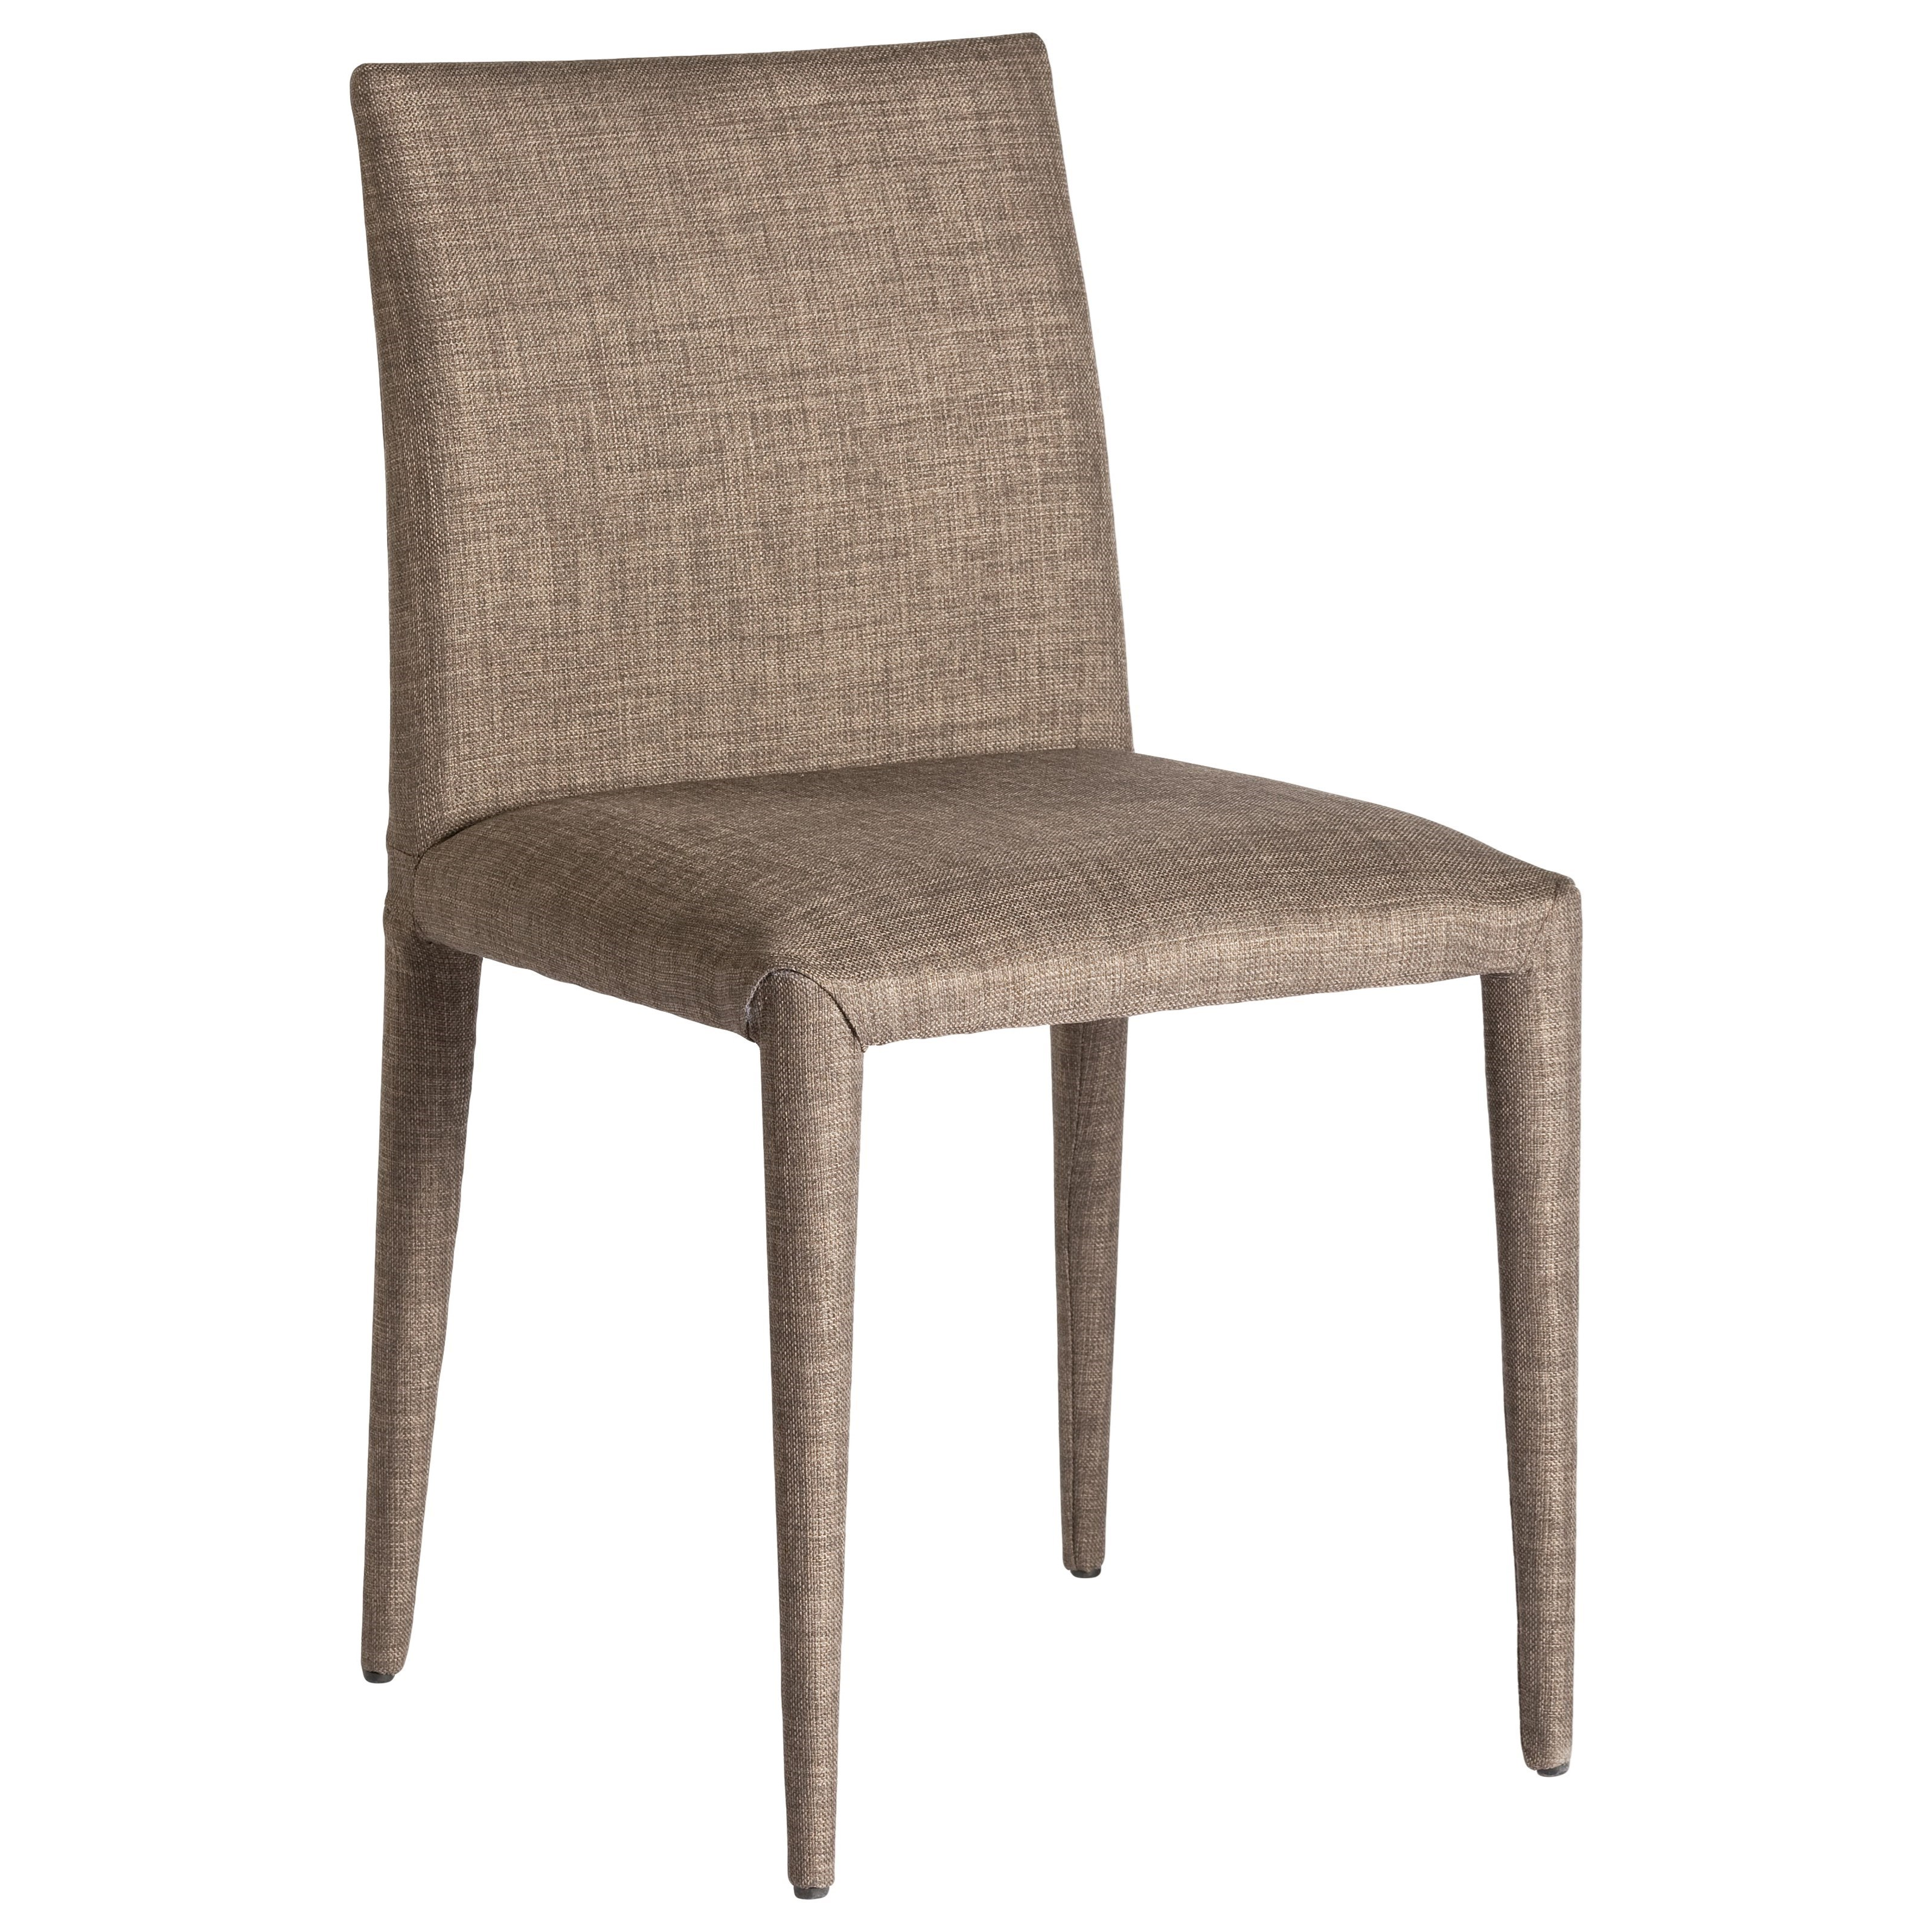 Pari Dining Chair Cappuccino by Moe's Home Collection at Stoney Creek Furniture